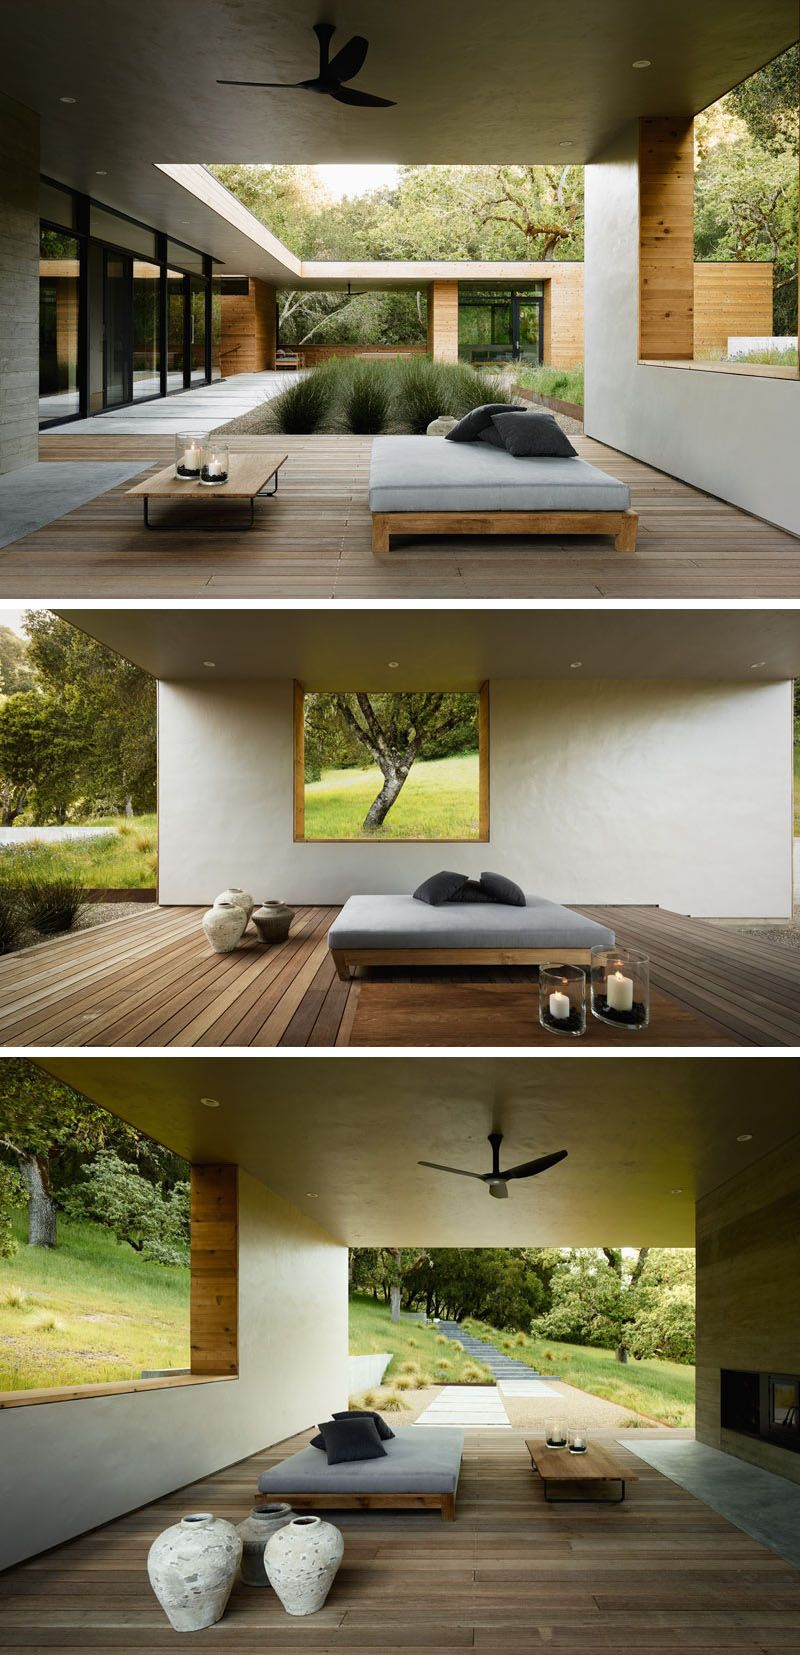 ^ 1000+ images about Houses on Pinterest